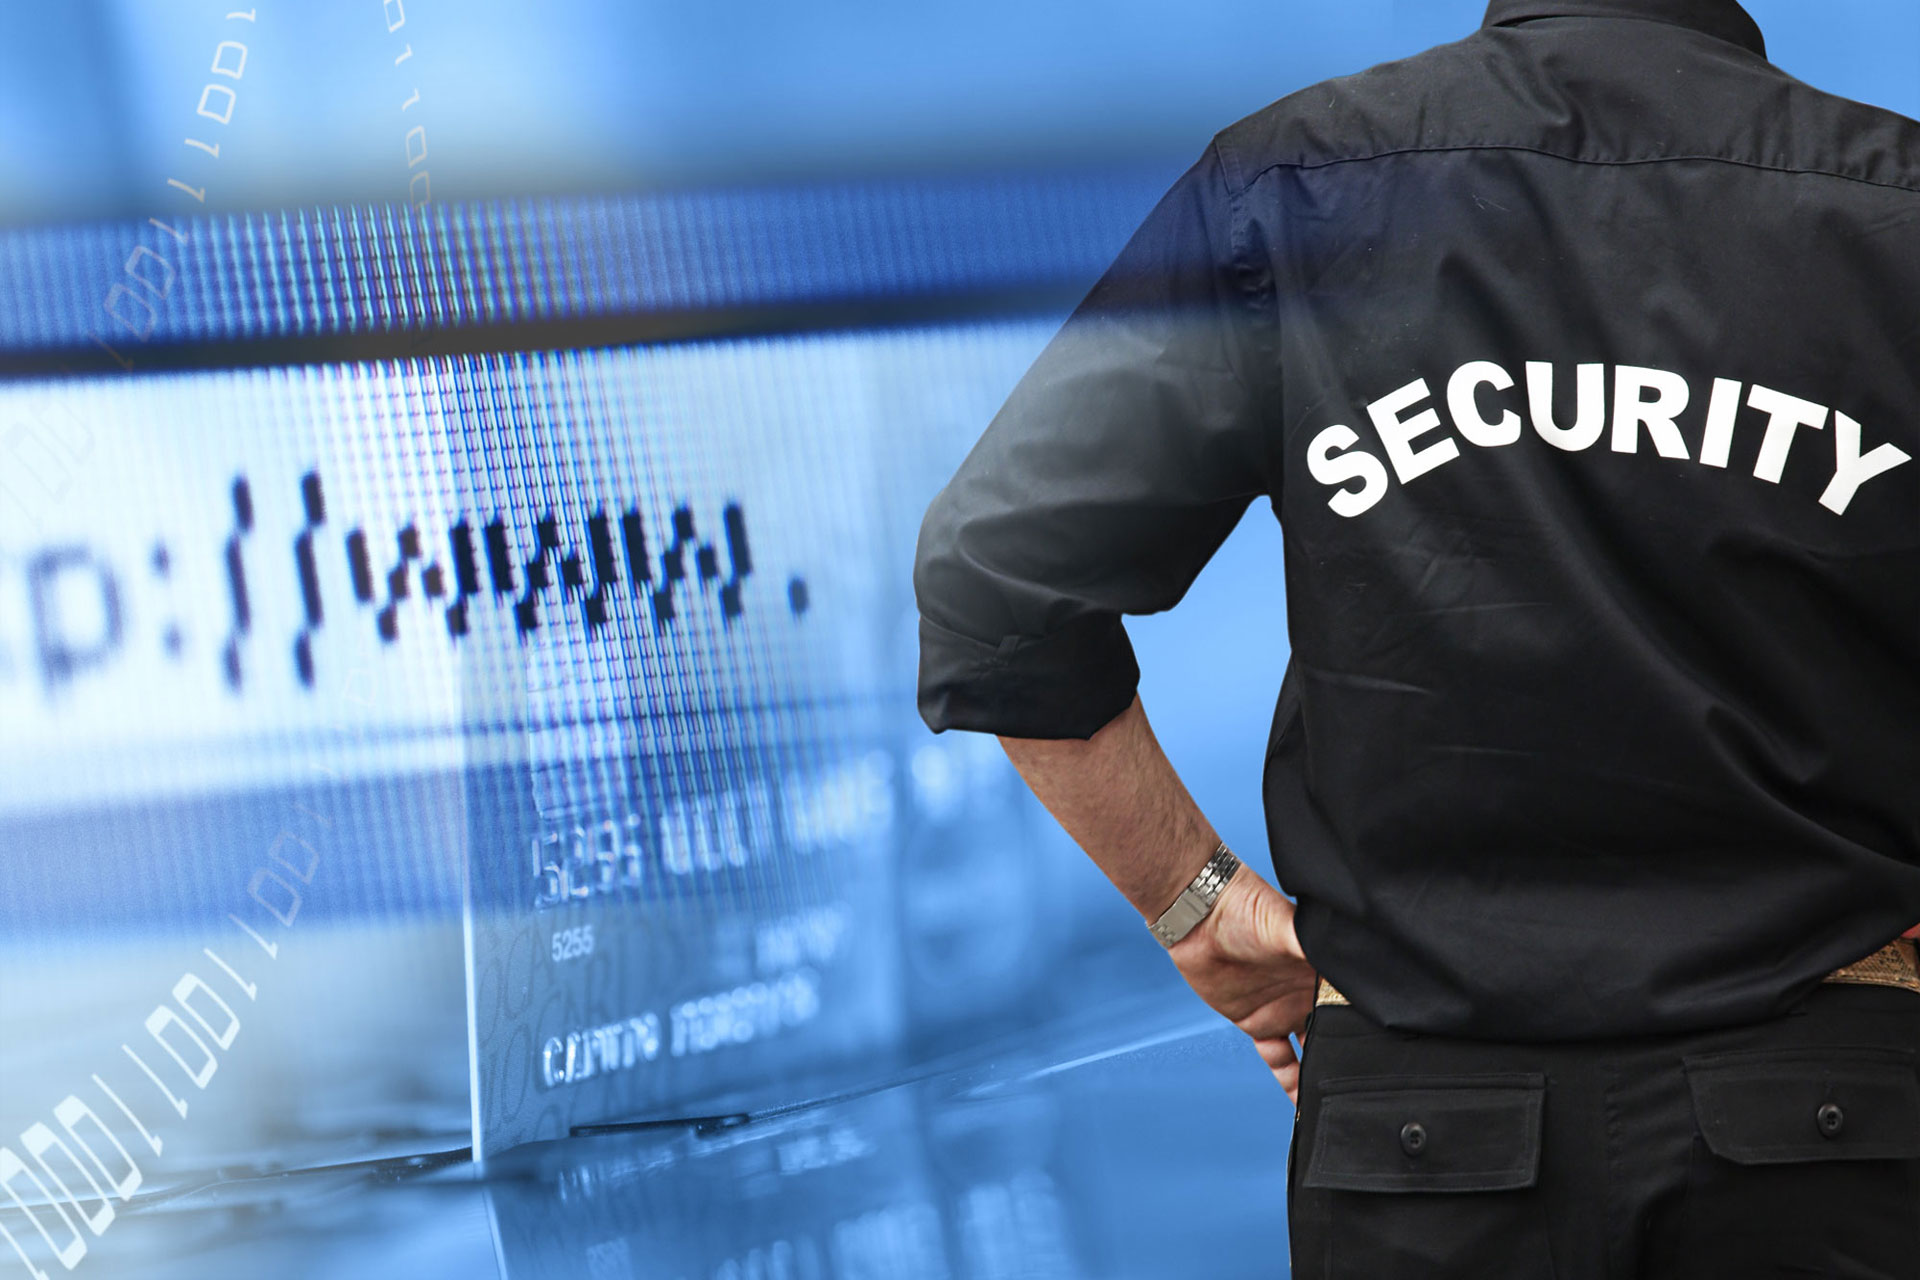 Top 5 Security Guard Firms in USA